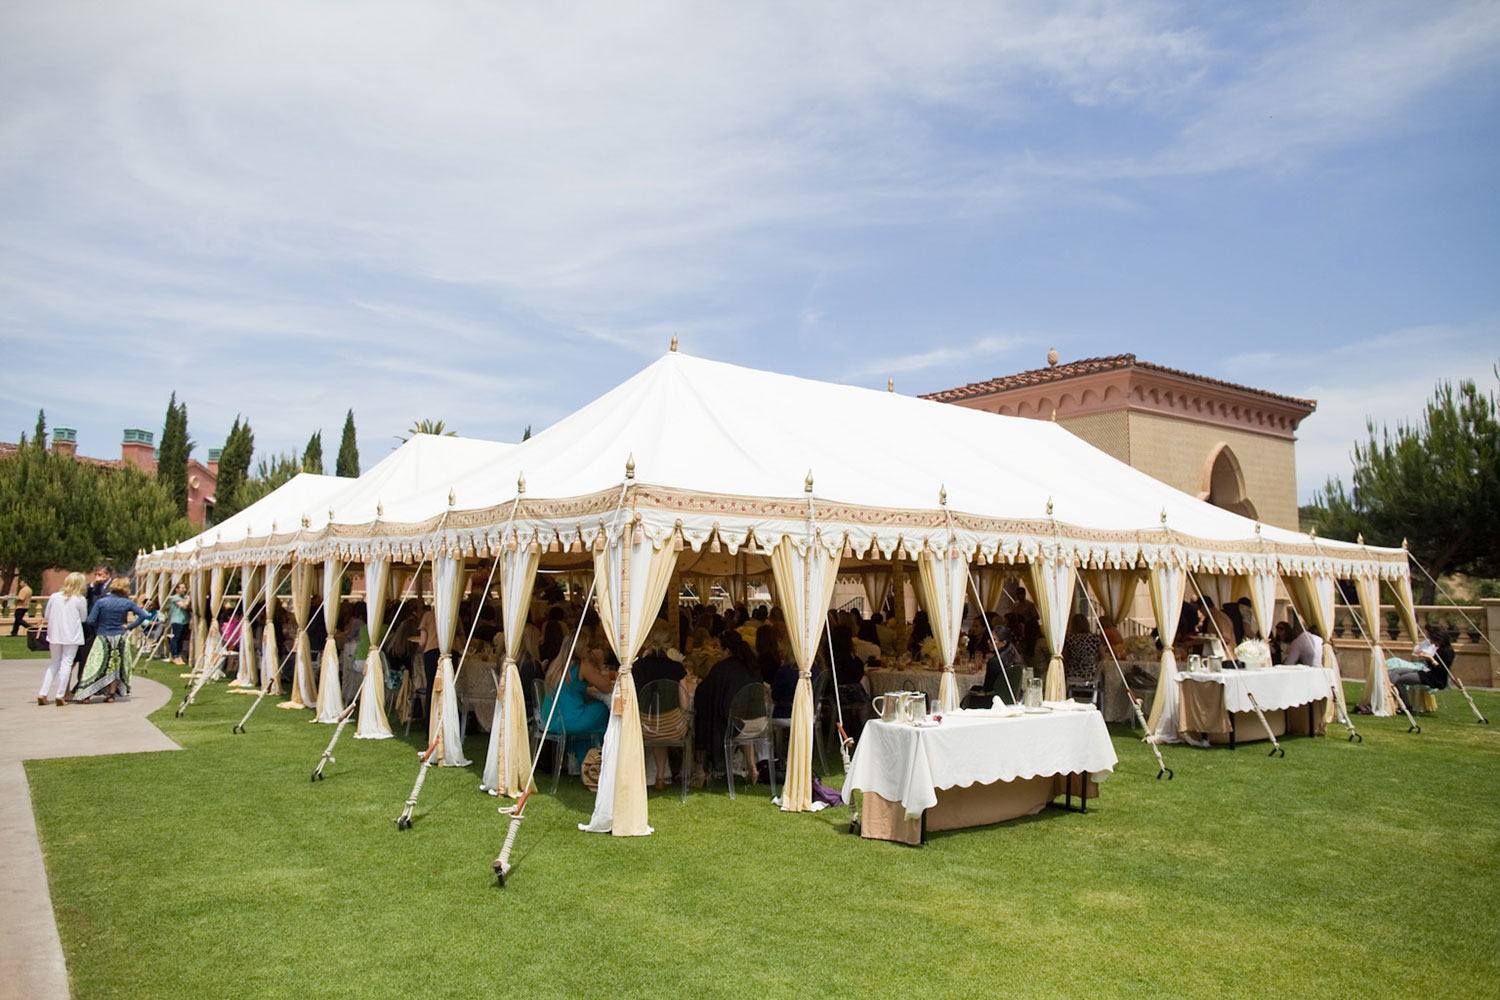 raj-tents-classic-wedding-engage.jpg